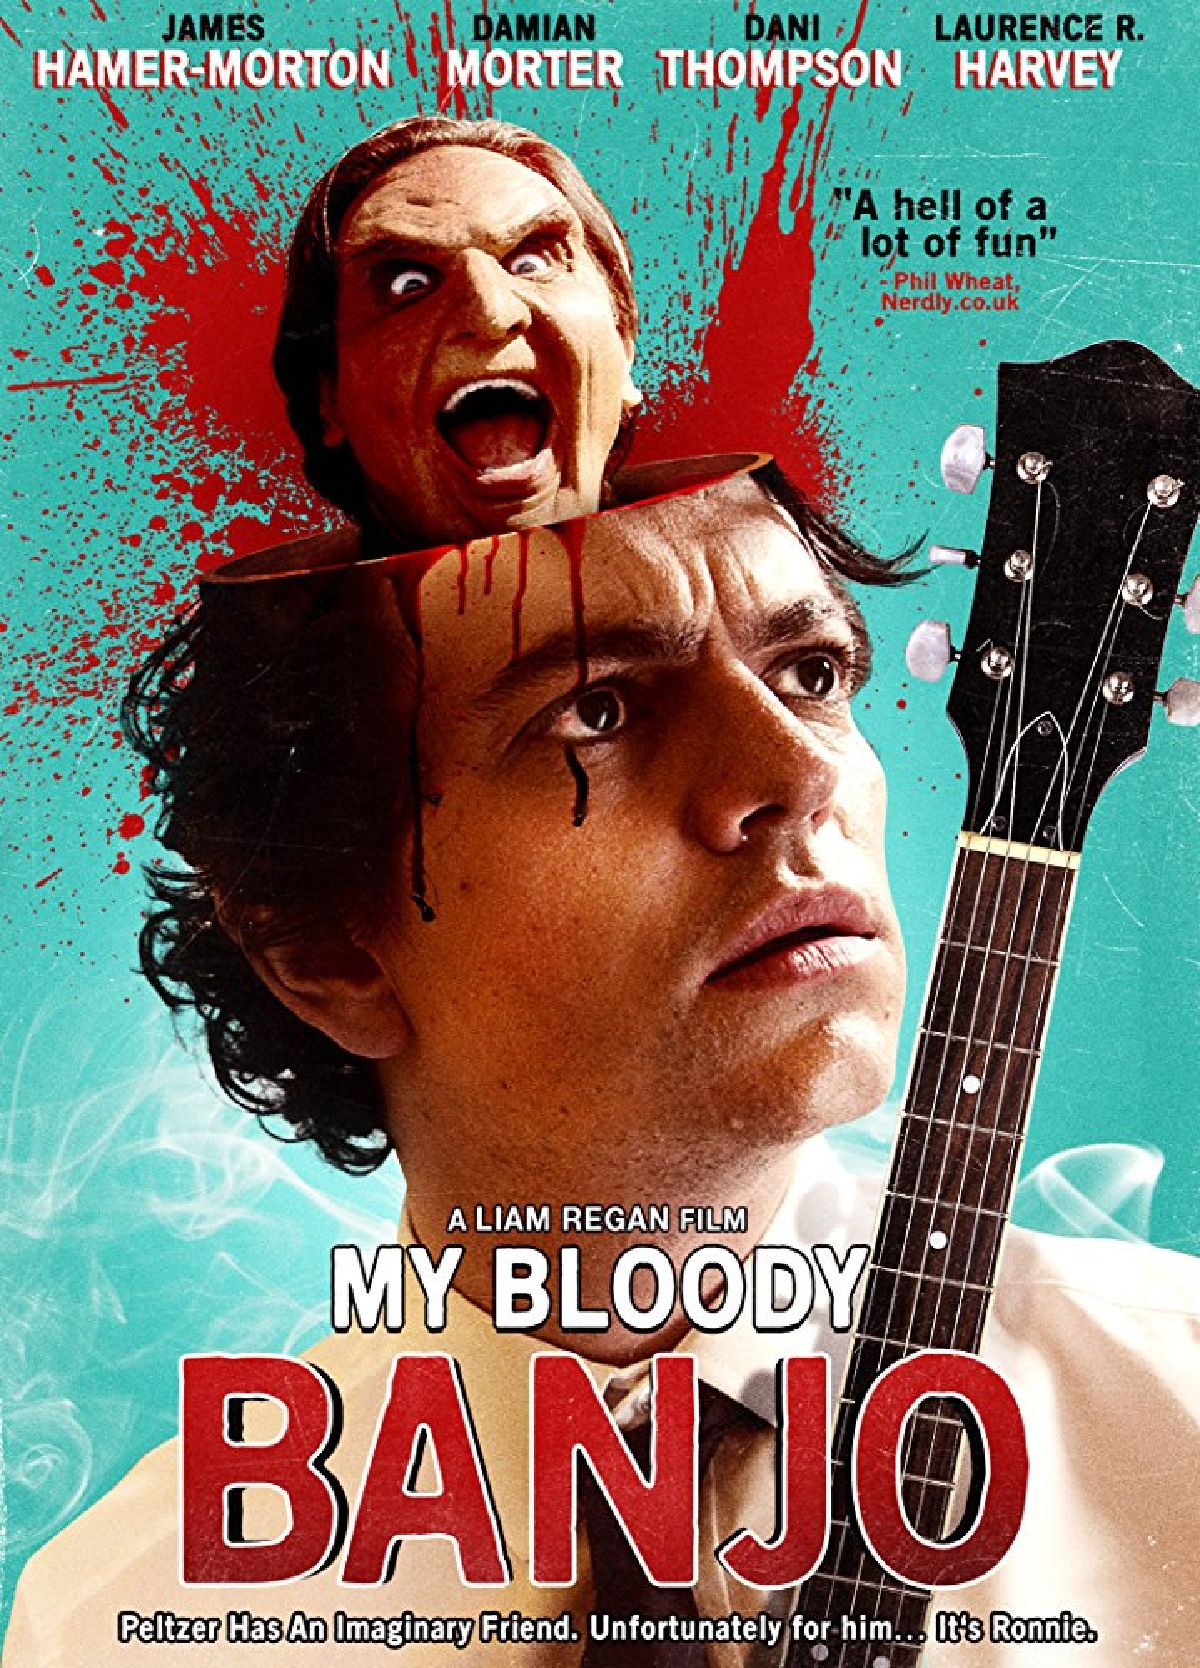 'My Bloody Banjo' movie poster